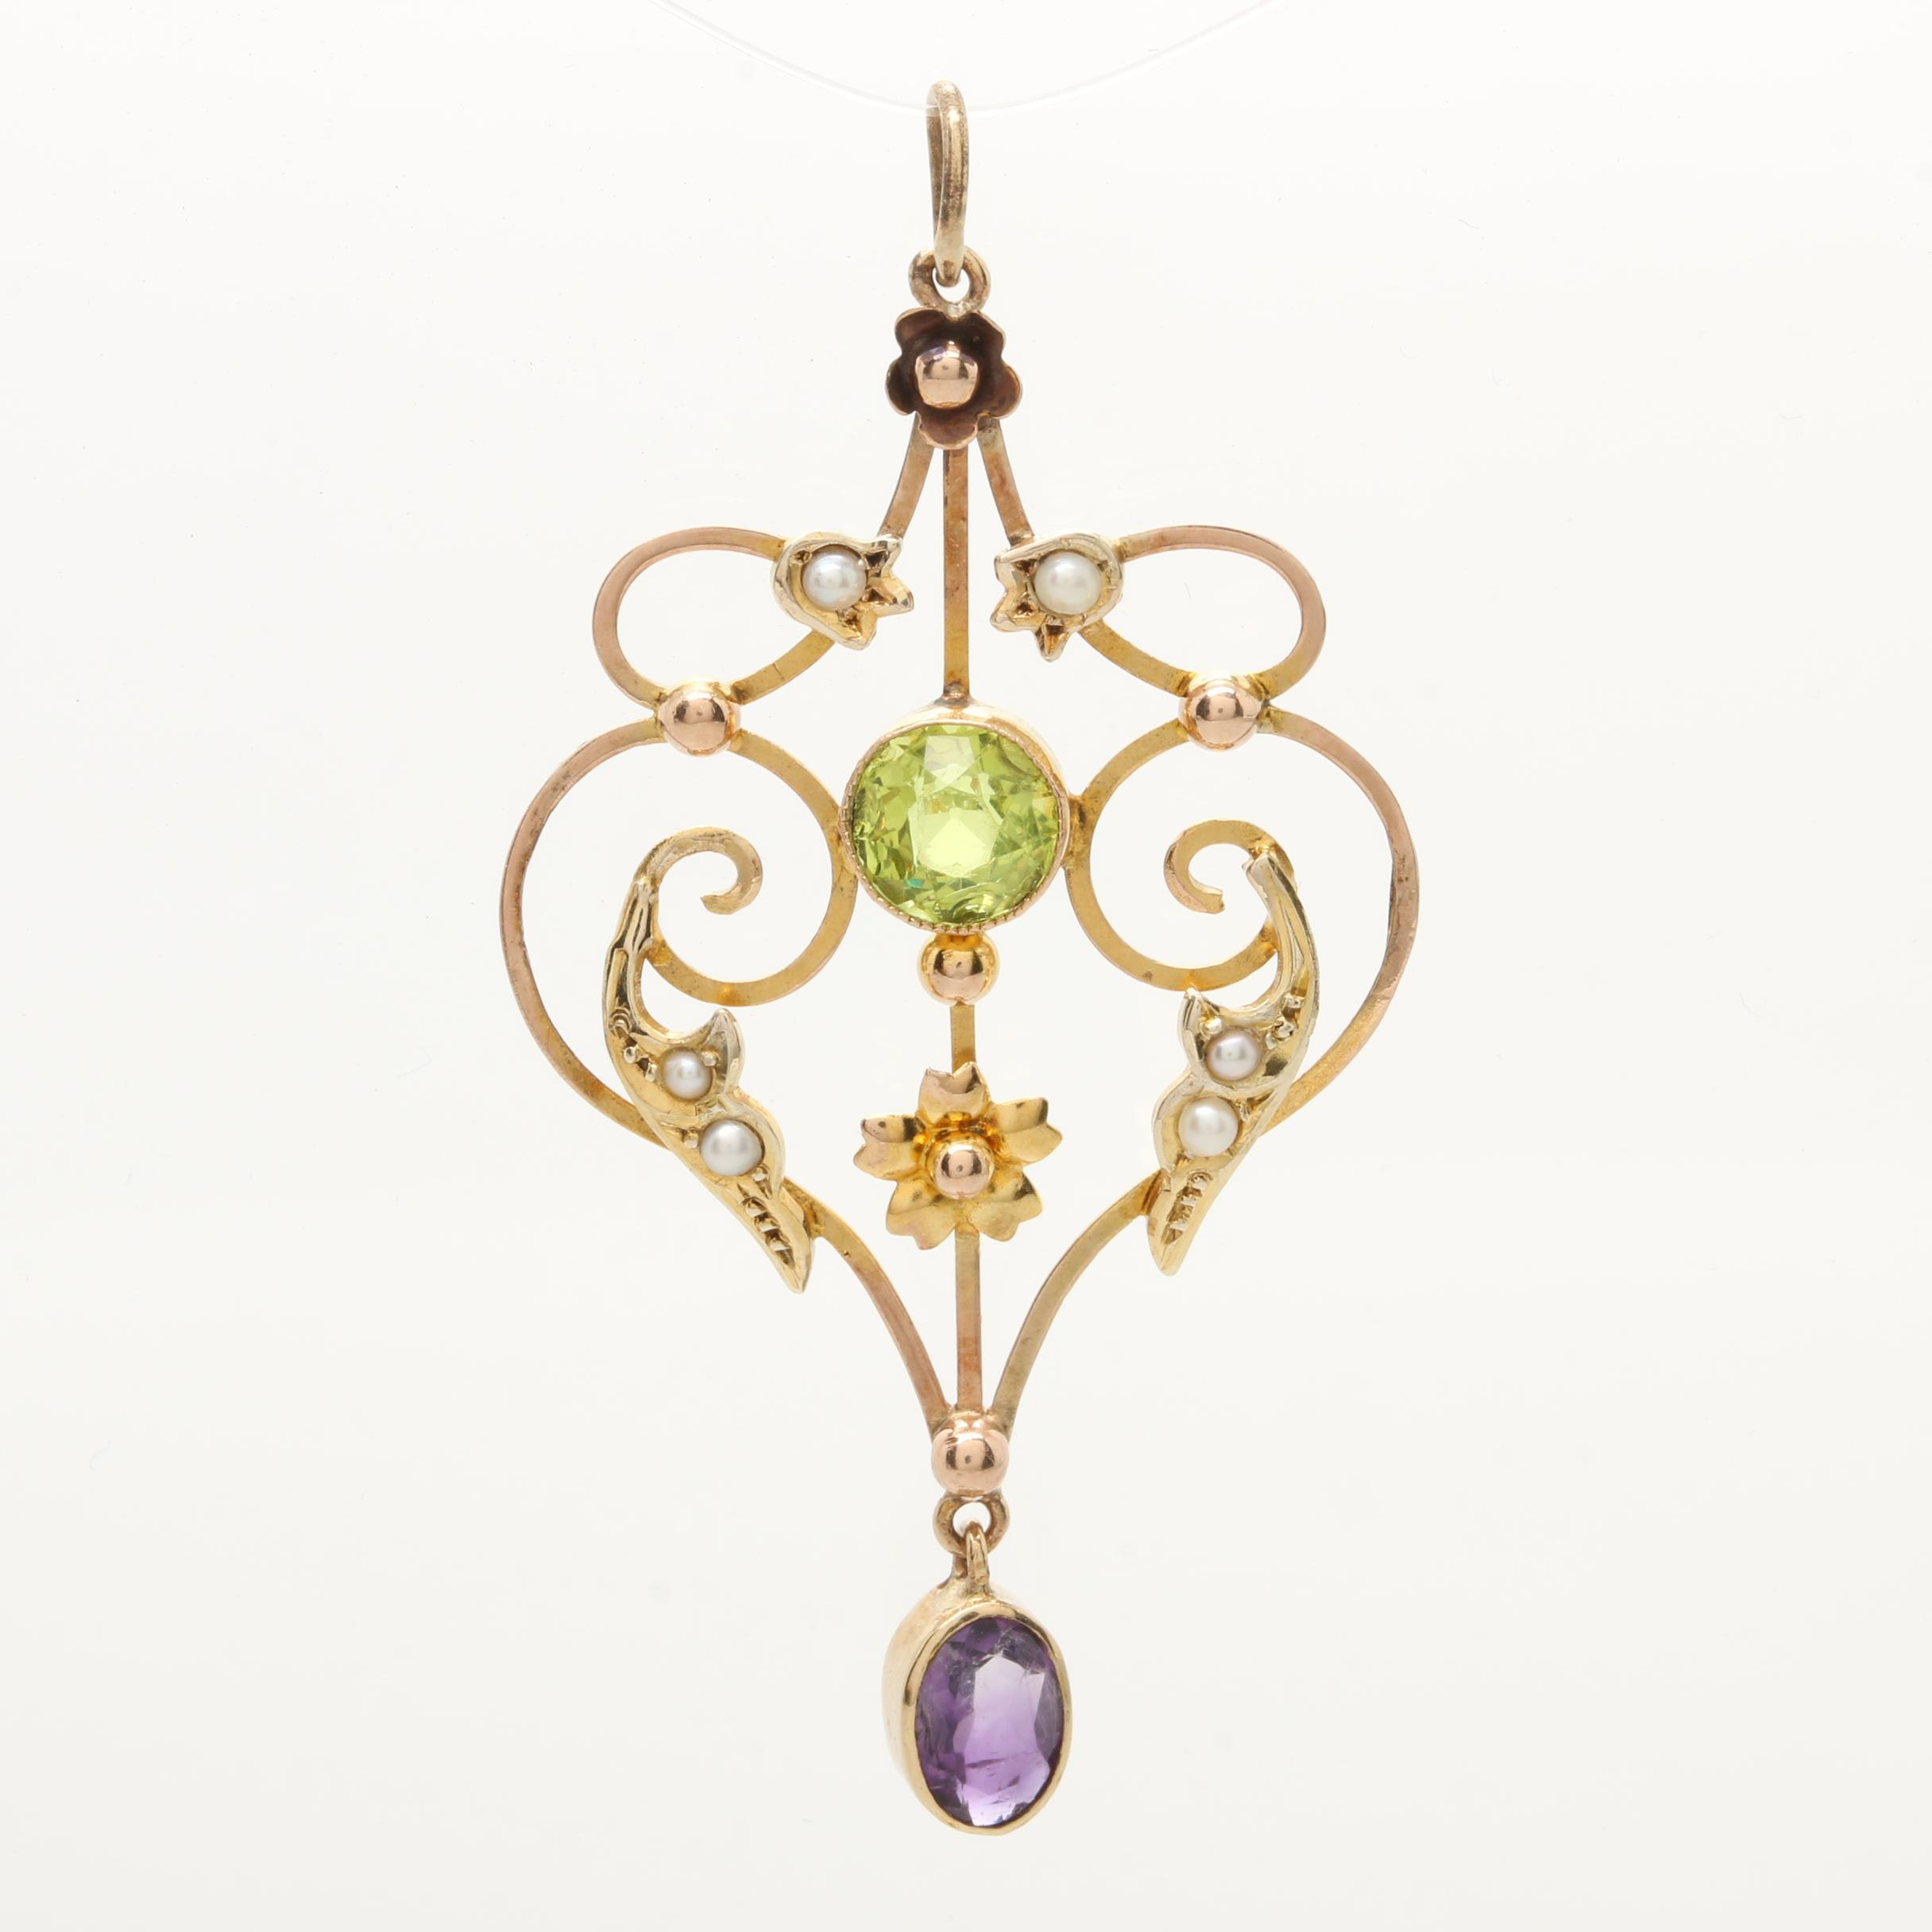 10K Yellow and Rose Gold Glass, Amethyst, and Seed Pearl Pendant